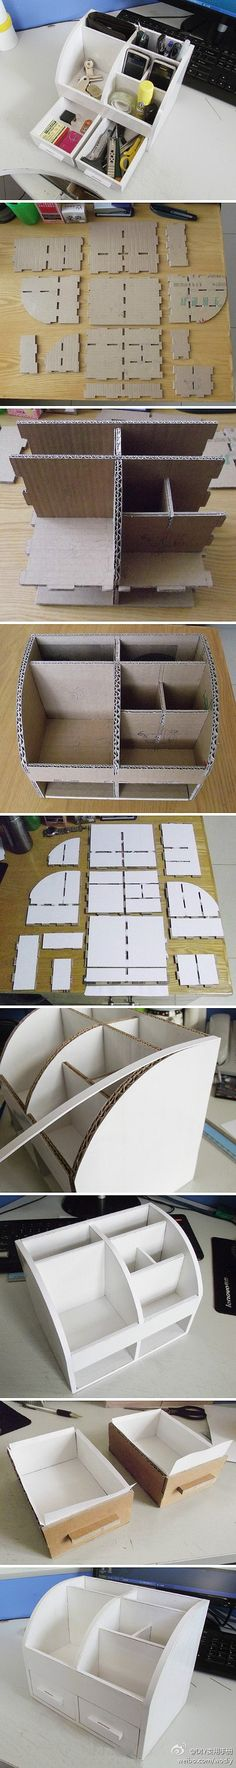 Cardboard desk organizer but not in English.